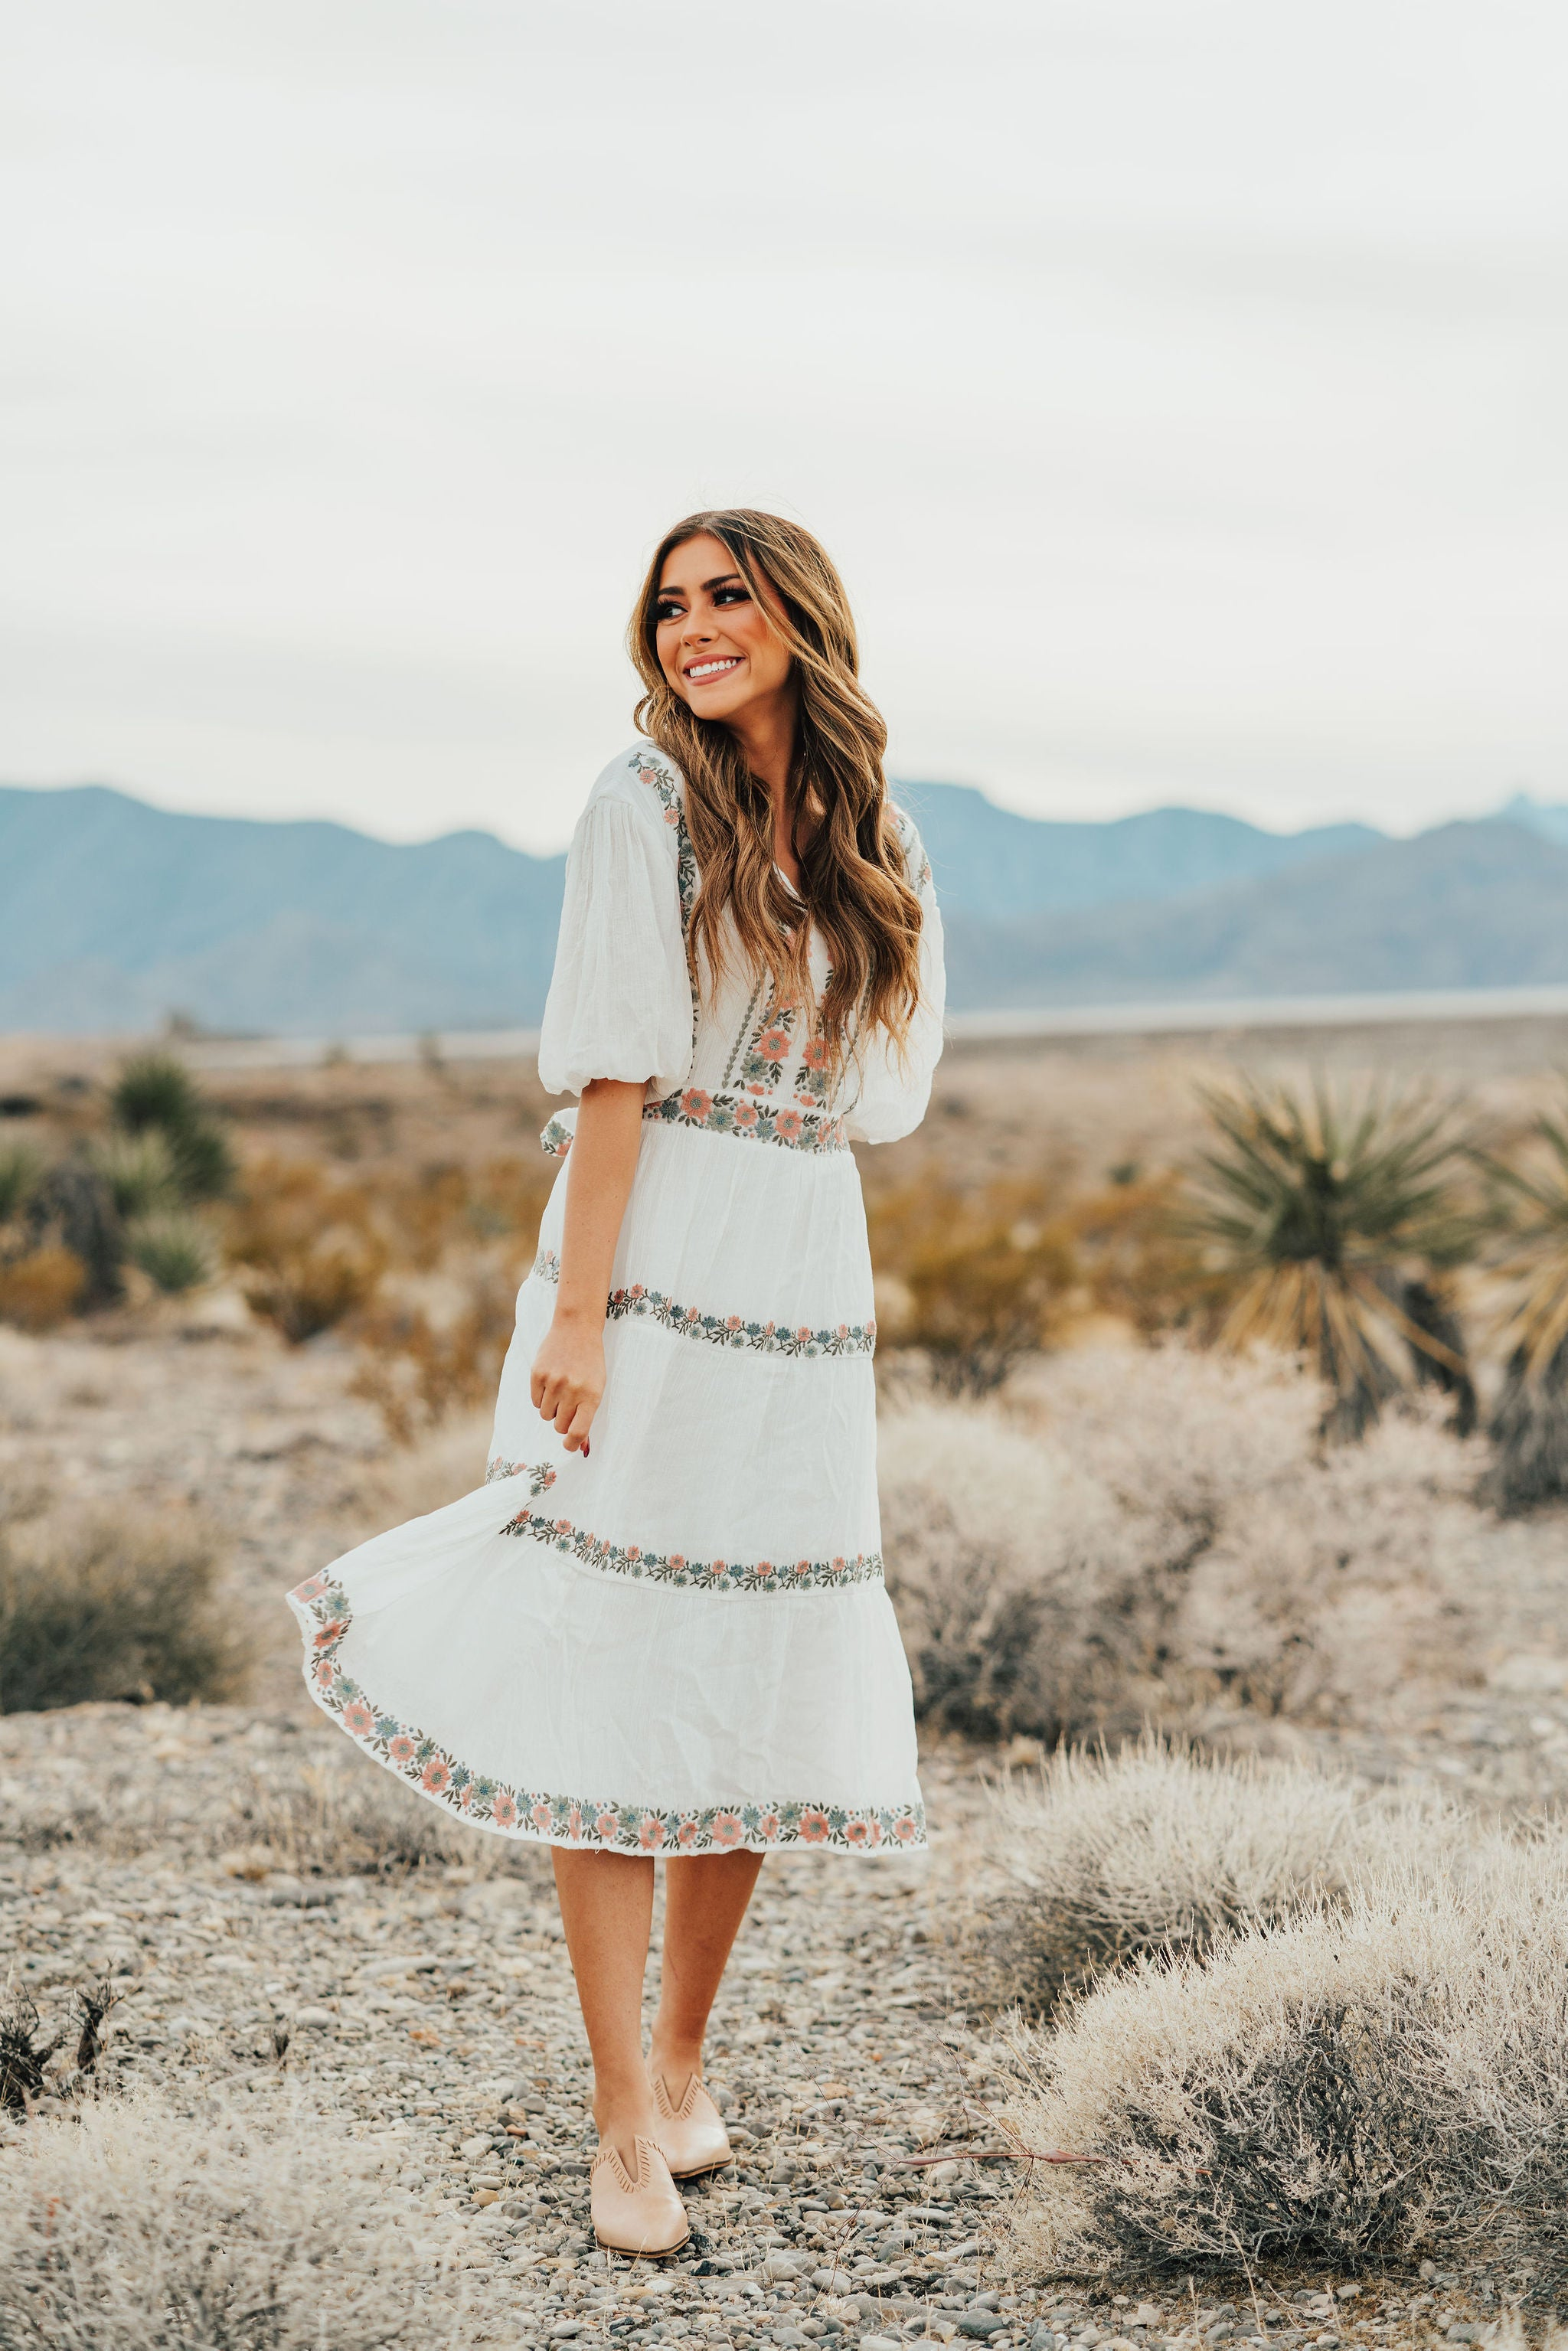 AL CARRAWAY X PINK DESERT - THE DANICA EMBROIDERED MIDI DRESS IN IVORY